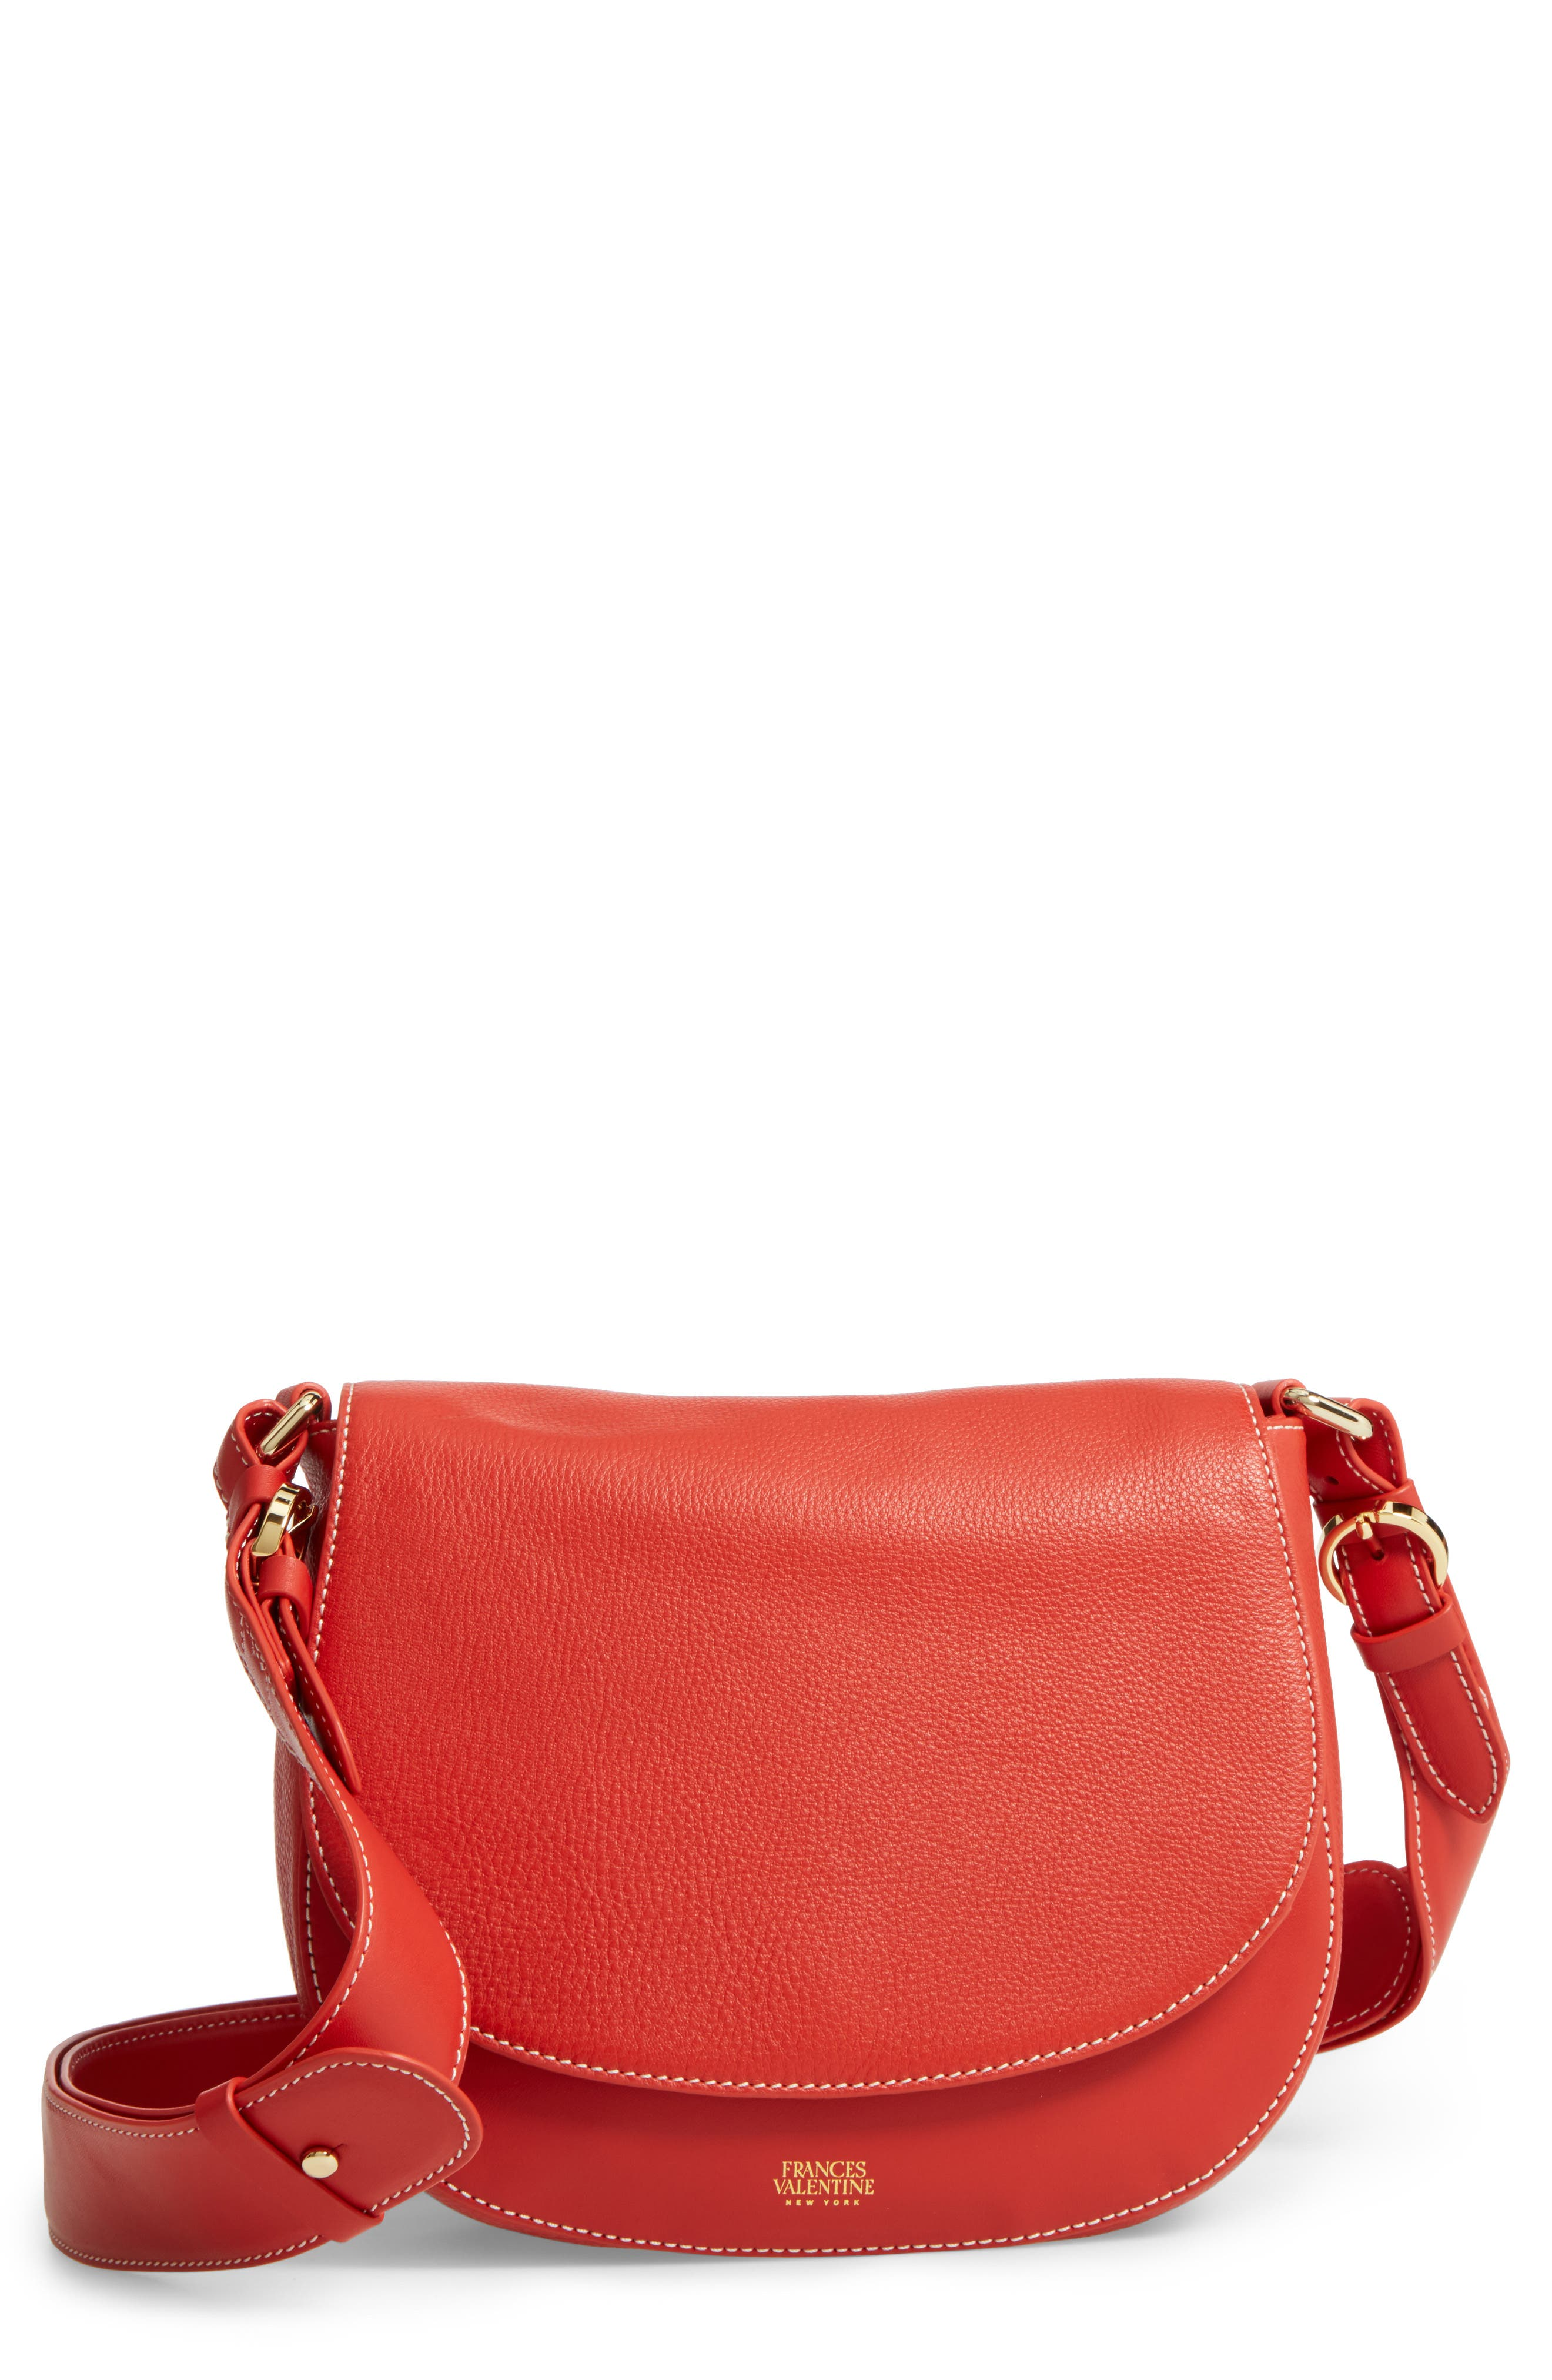 Main Image - Frances Valentine Small Ellen Leather Crossbody Bag